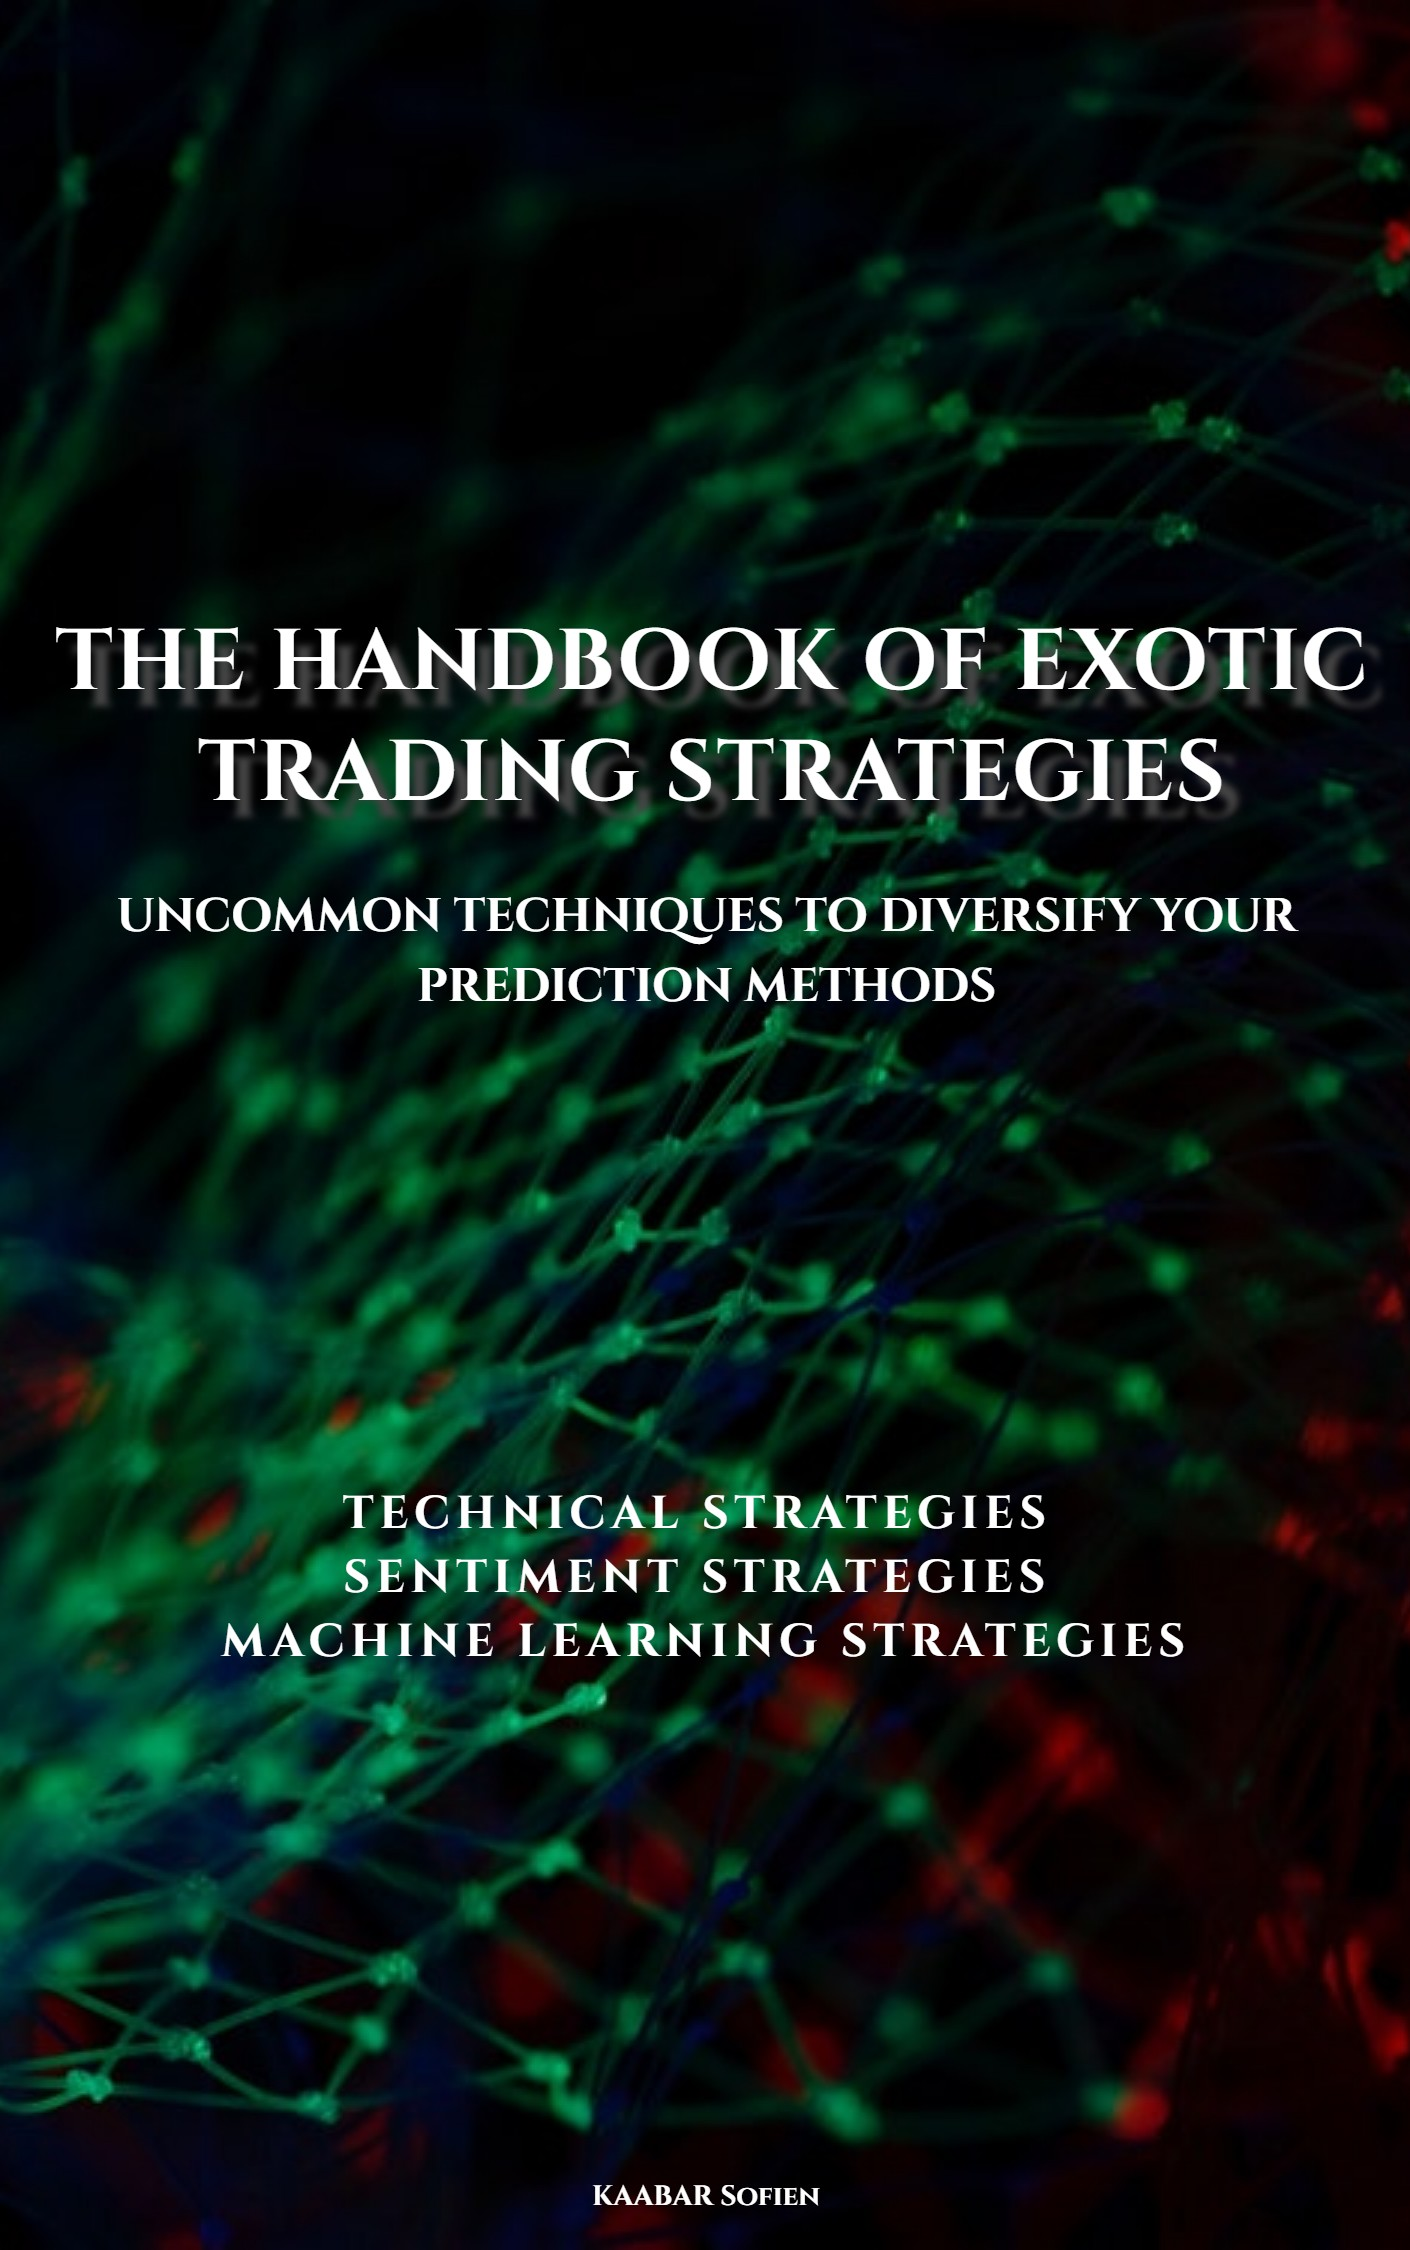 The handbook of exotic trading strategies, an Ebook by Sofien Kaabar